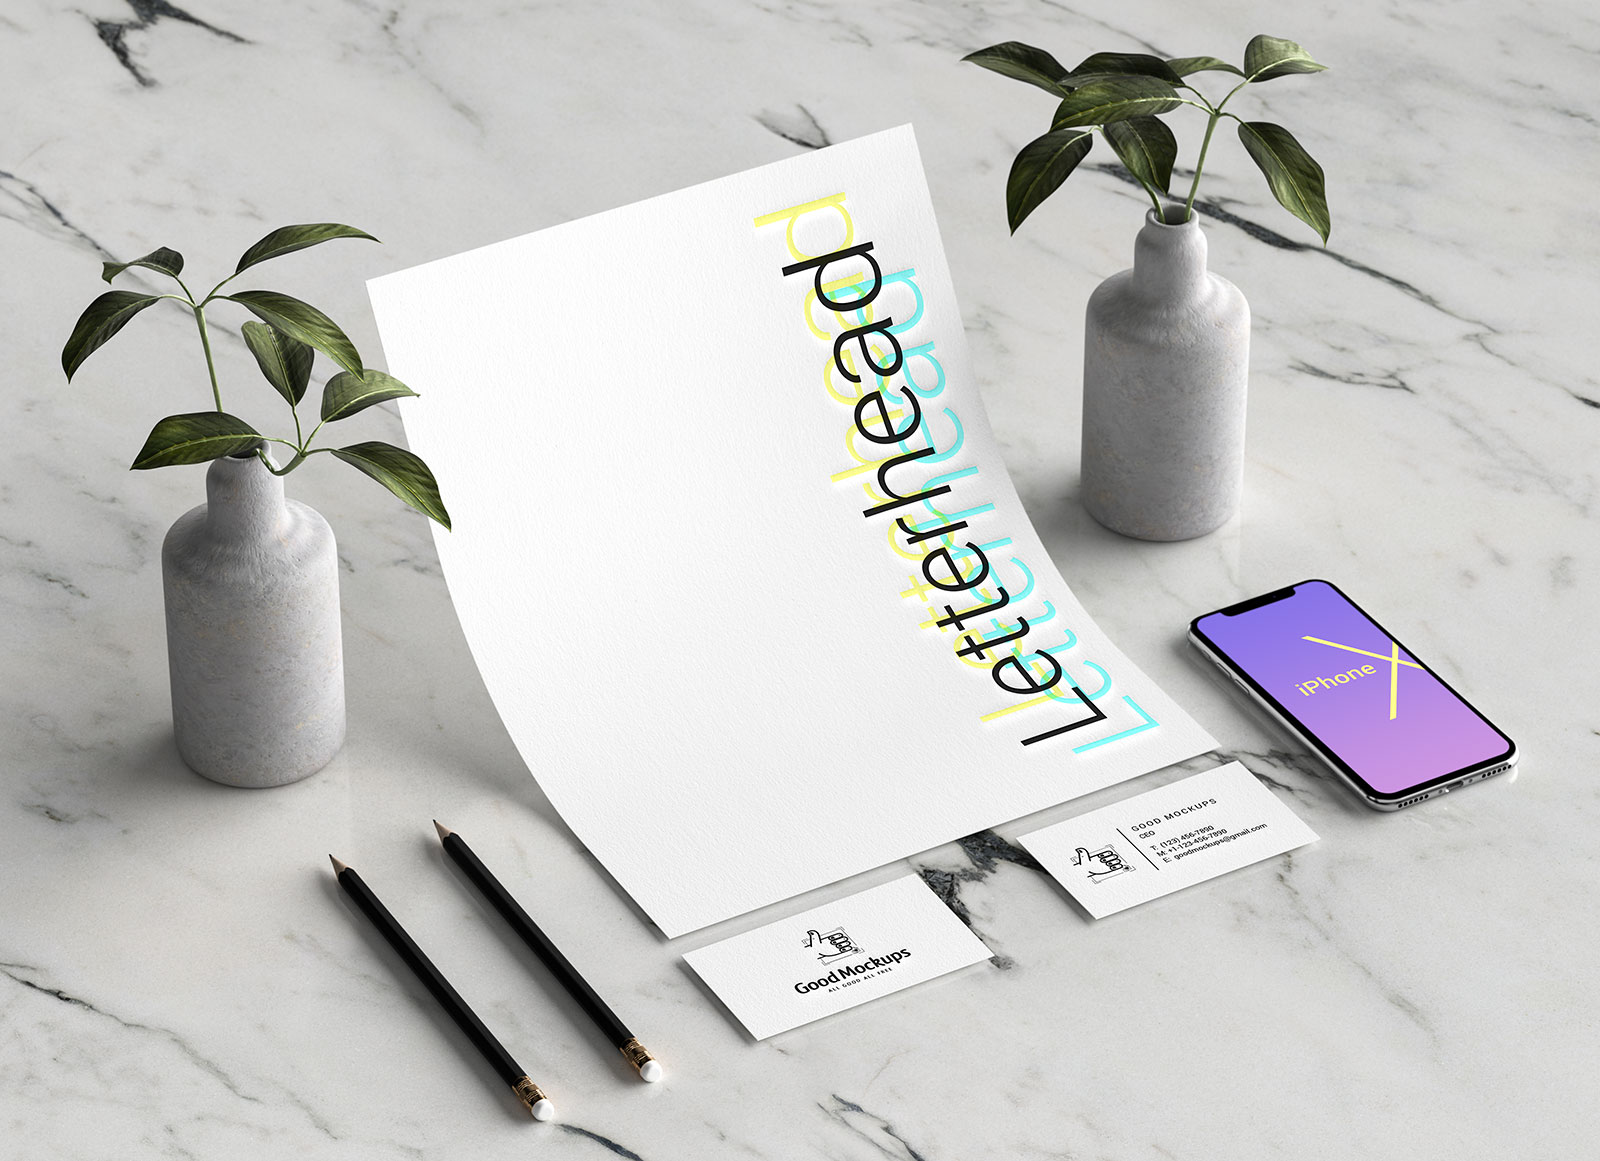 Free-Letterhead,-Business-Card,-iPhone-X-Stationery-Mockup-PSD